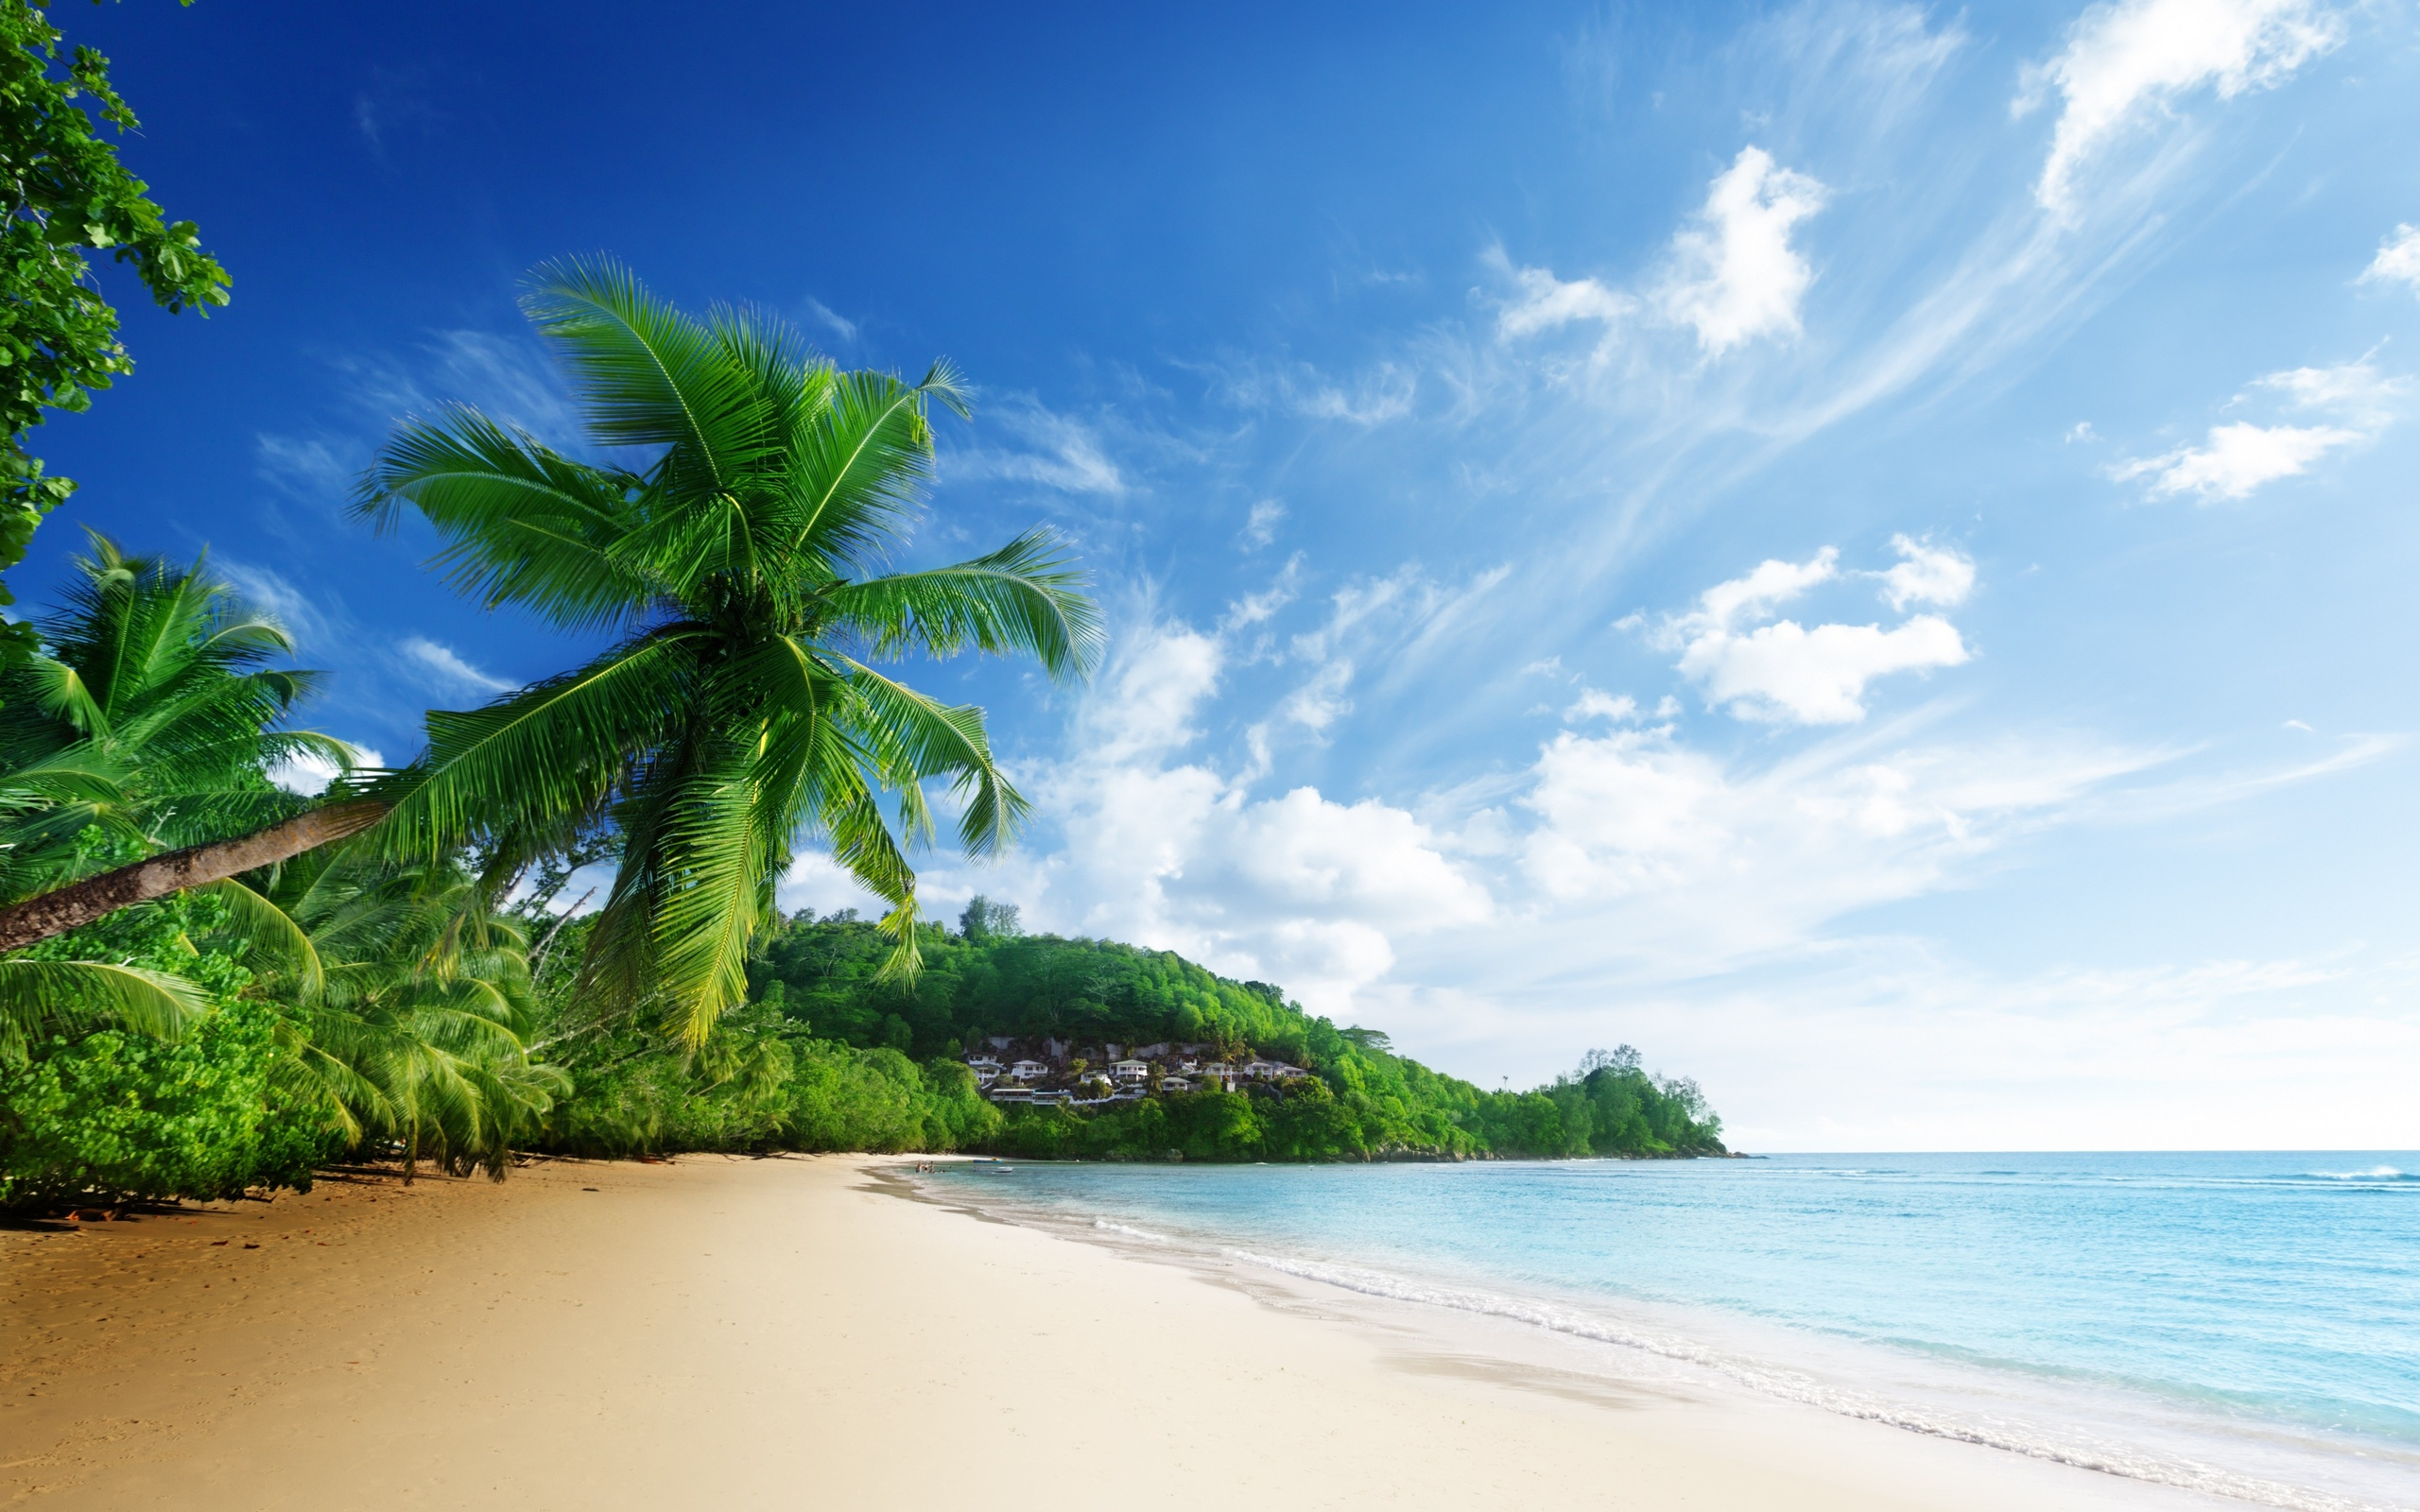 45 Beach Wallpaper For Mobile And Desktop In Full HD For